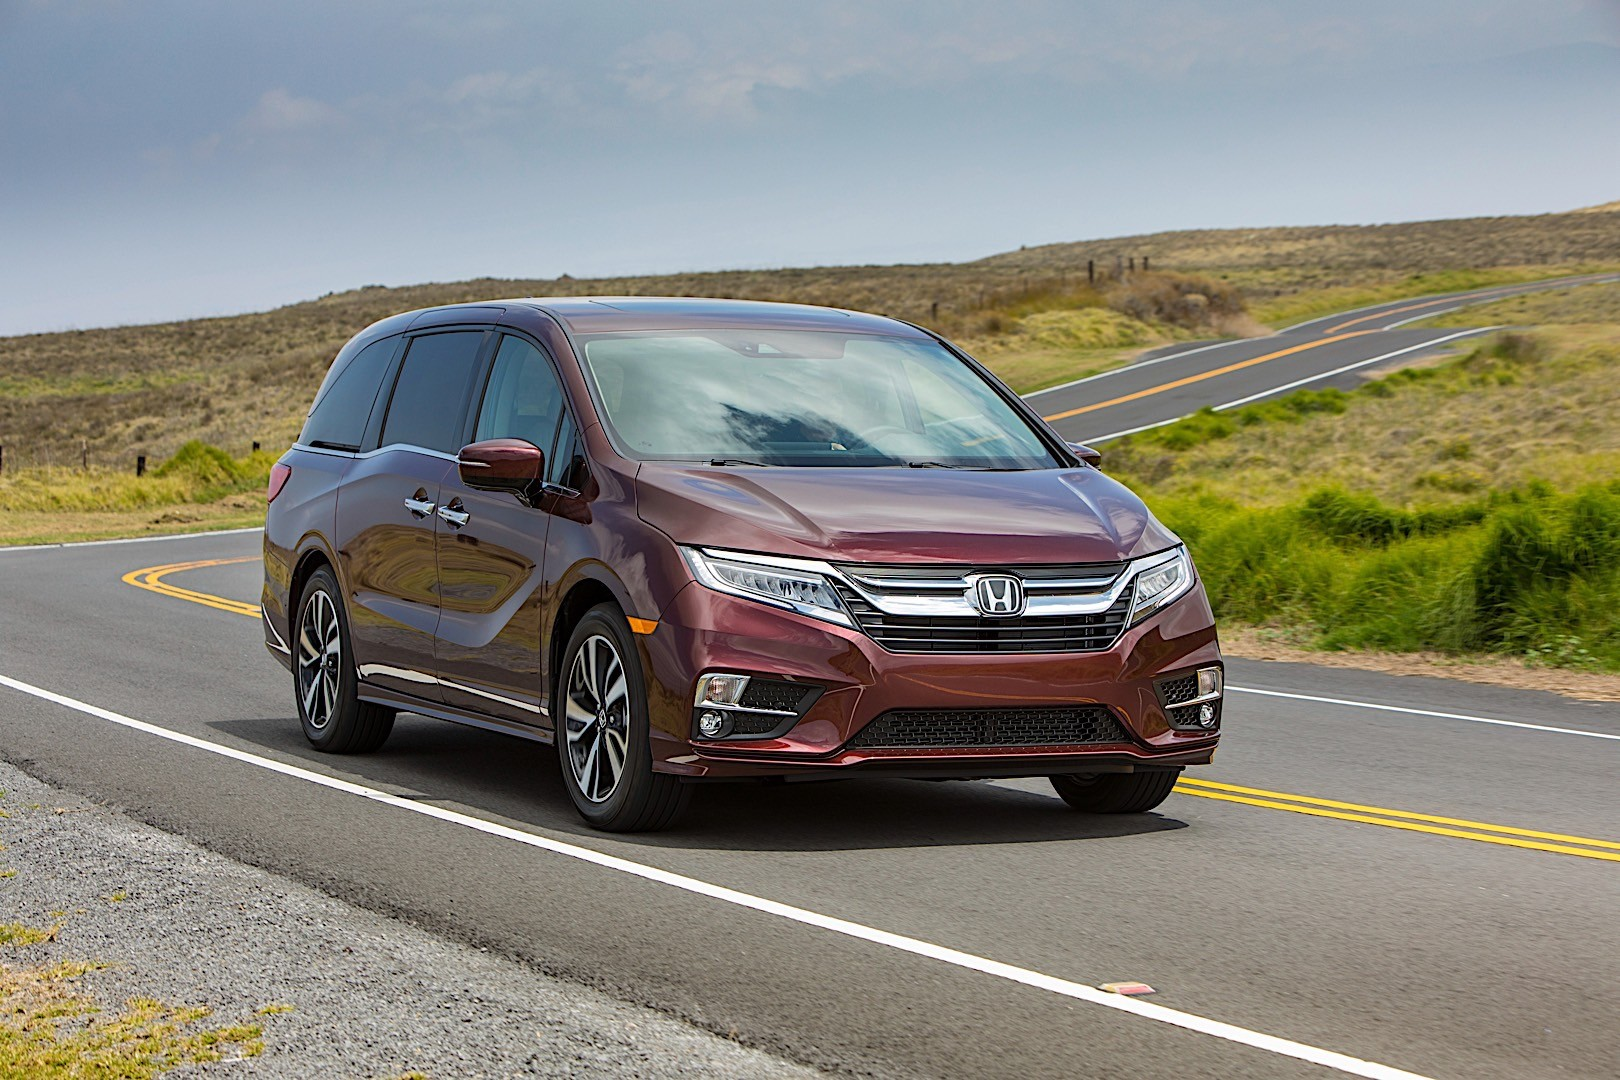 From wild and crazy accessories that stand out in a crowded car show. HONDA Odyssey specs & photos - 2017, 2018, 2019, 2020